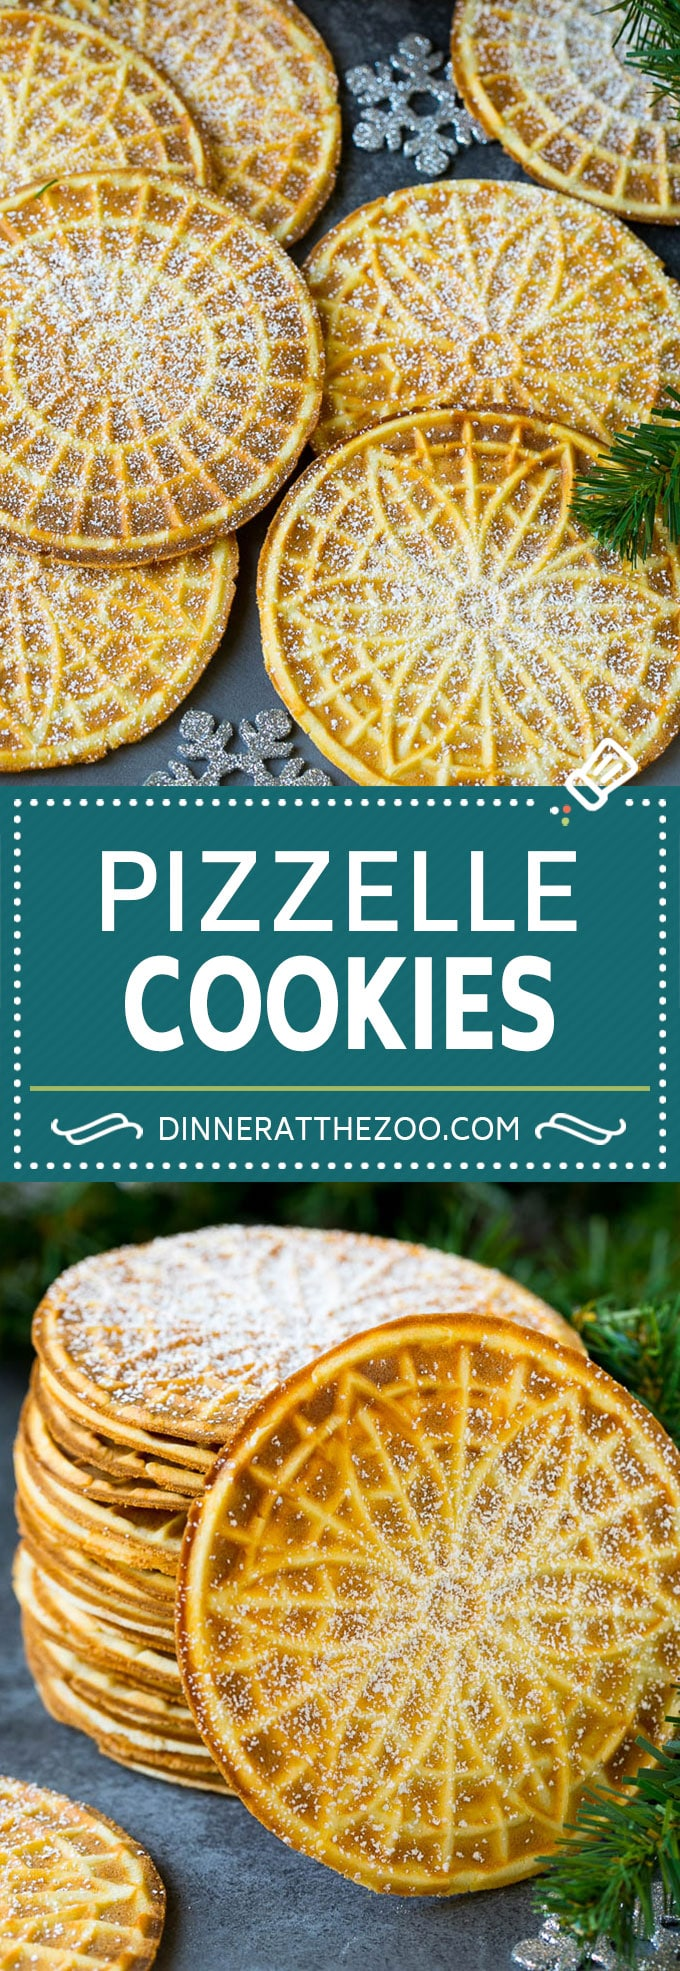 Pizzelle Cookies Recipe #cookies #baking #dessert #christmas #dinneratthezoo